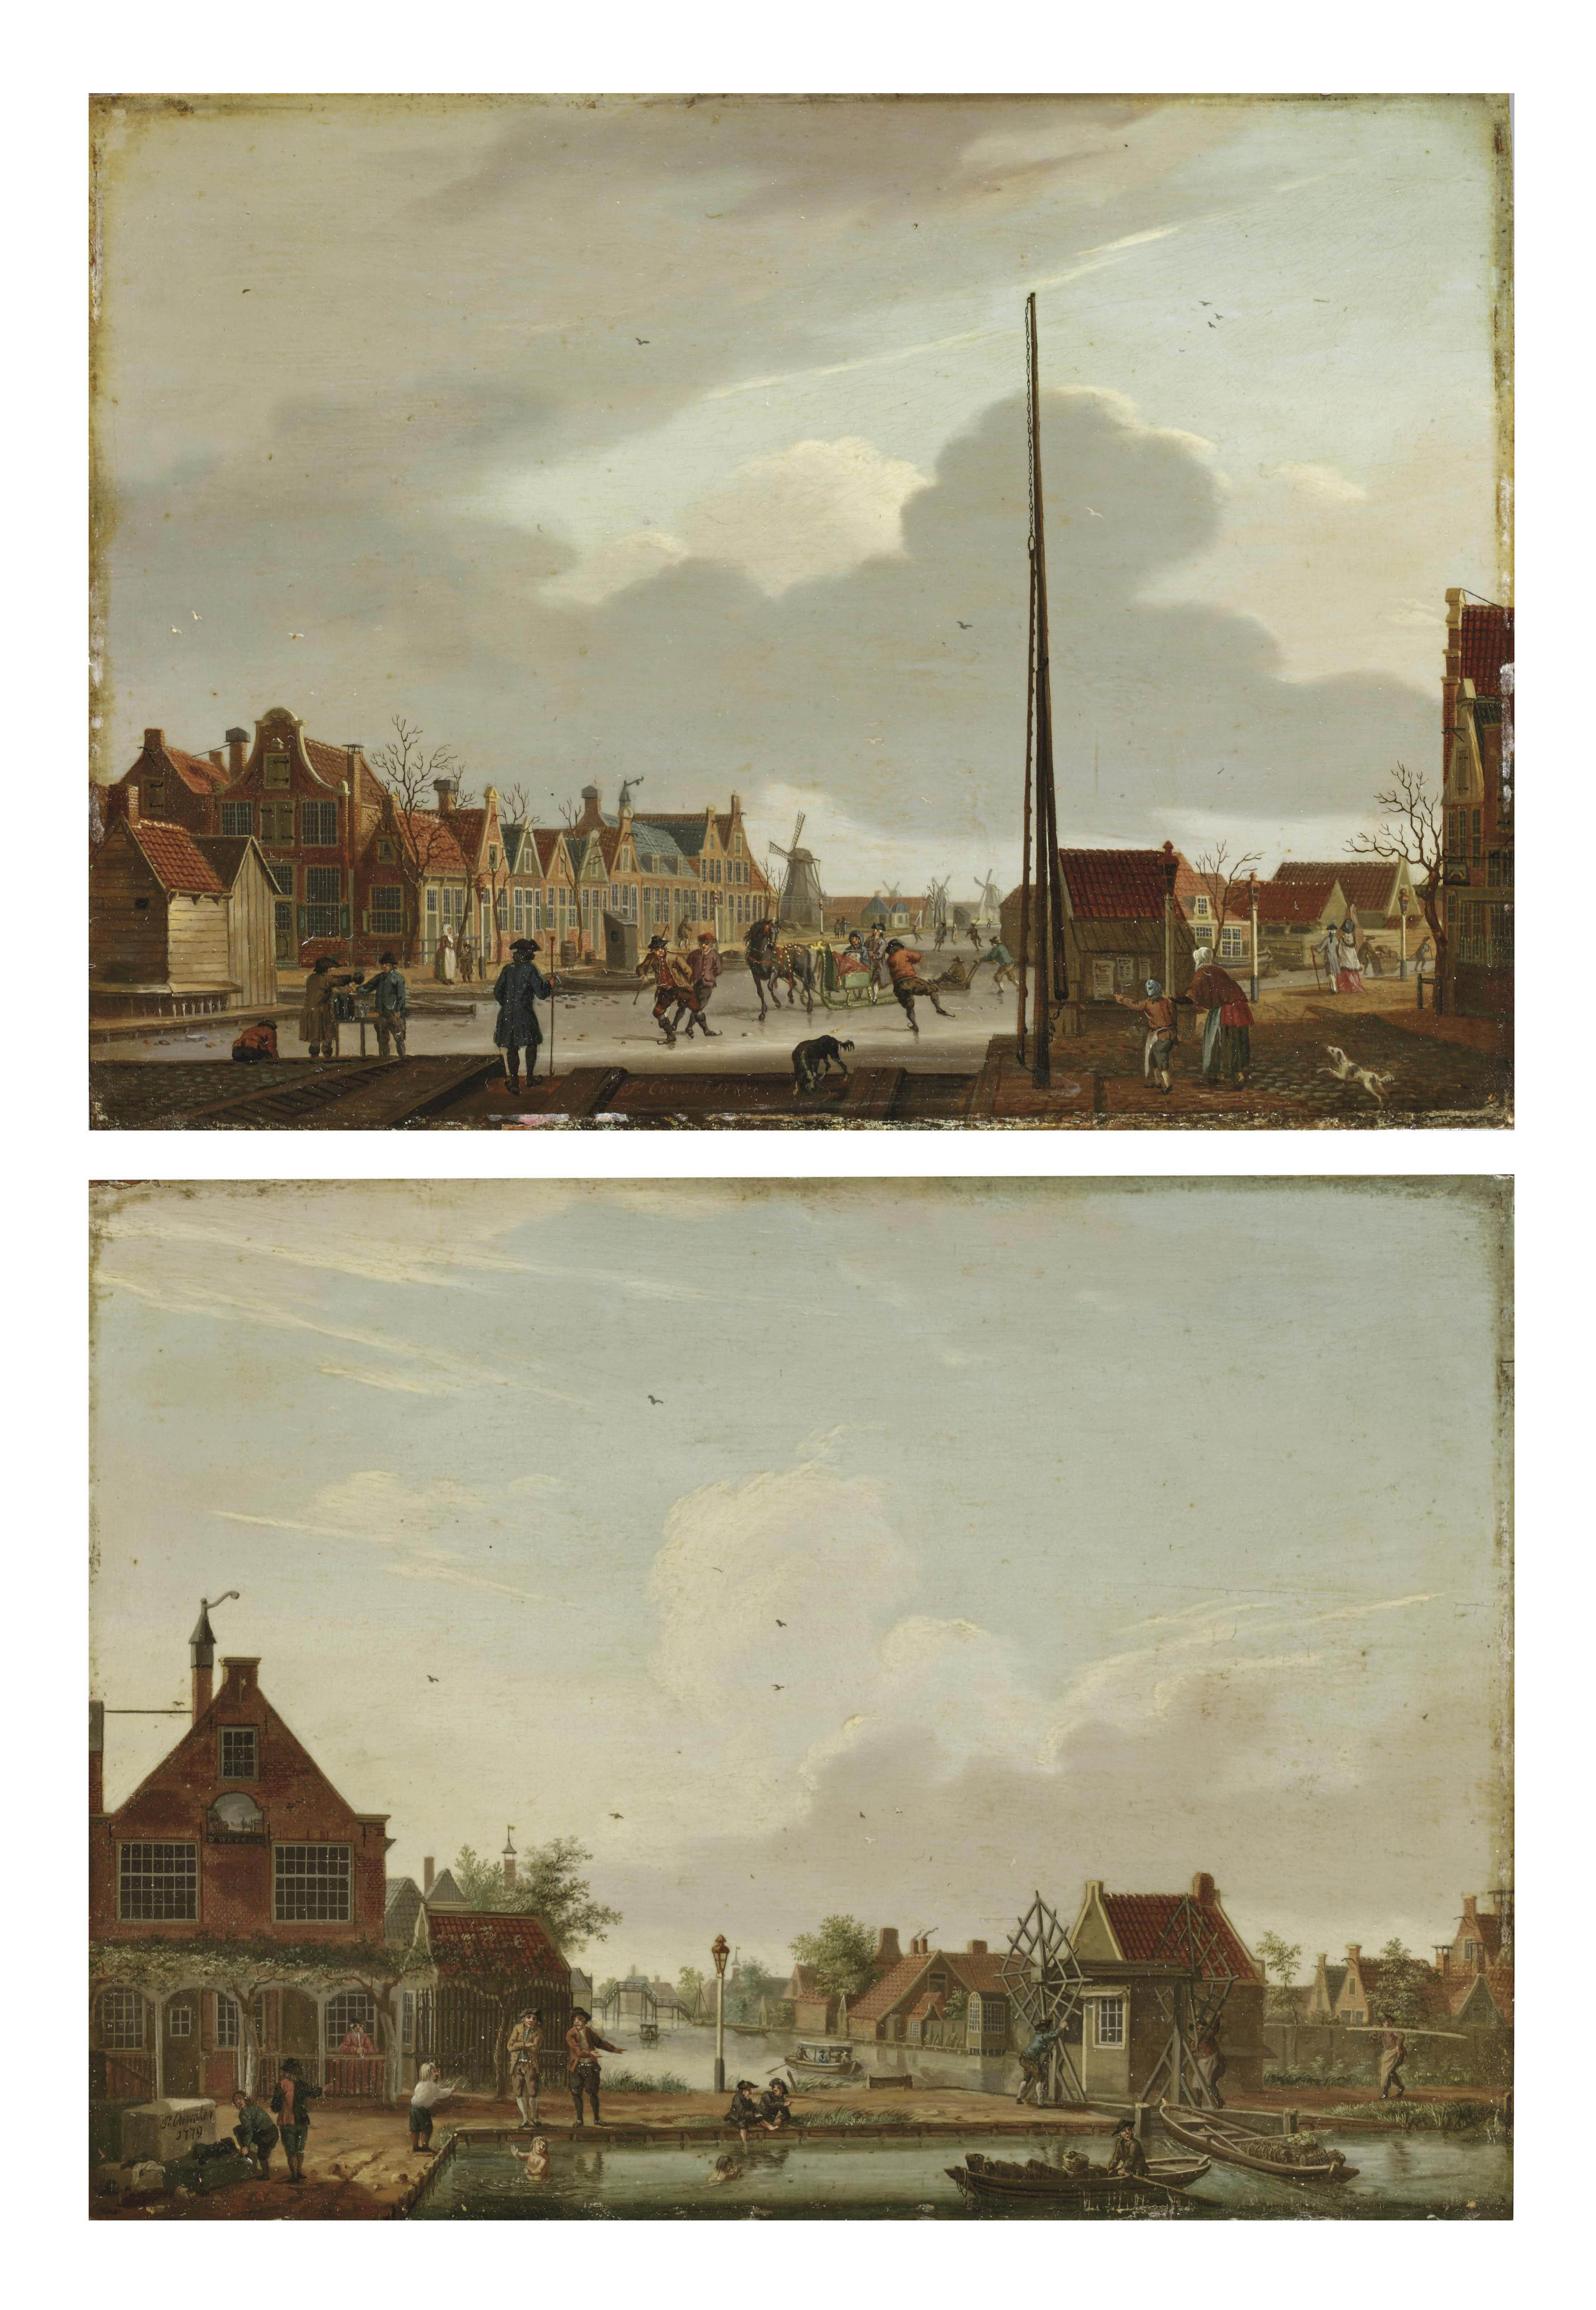 A view of the Overtoom, Amsterdam, in winter, with the Kostverloren Wetering to the left and the Overtoomse Vaart to the right; and A view of the Polderhuis by the Weteringpoort, in summer, with the slipway (overhaal) between the Boerenwetering and the Mennonietensloot to the right